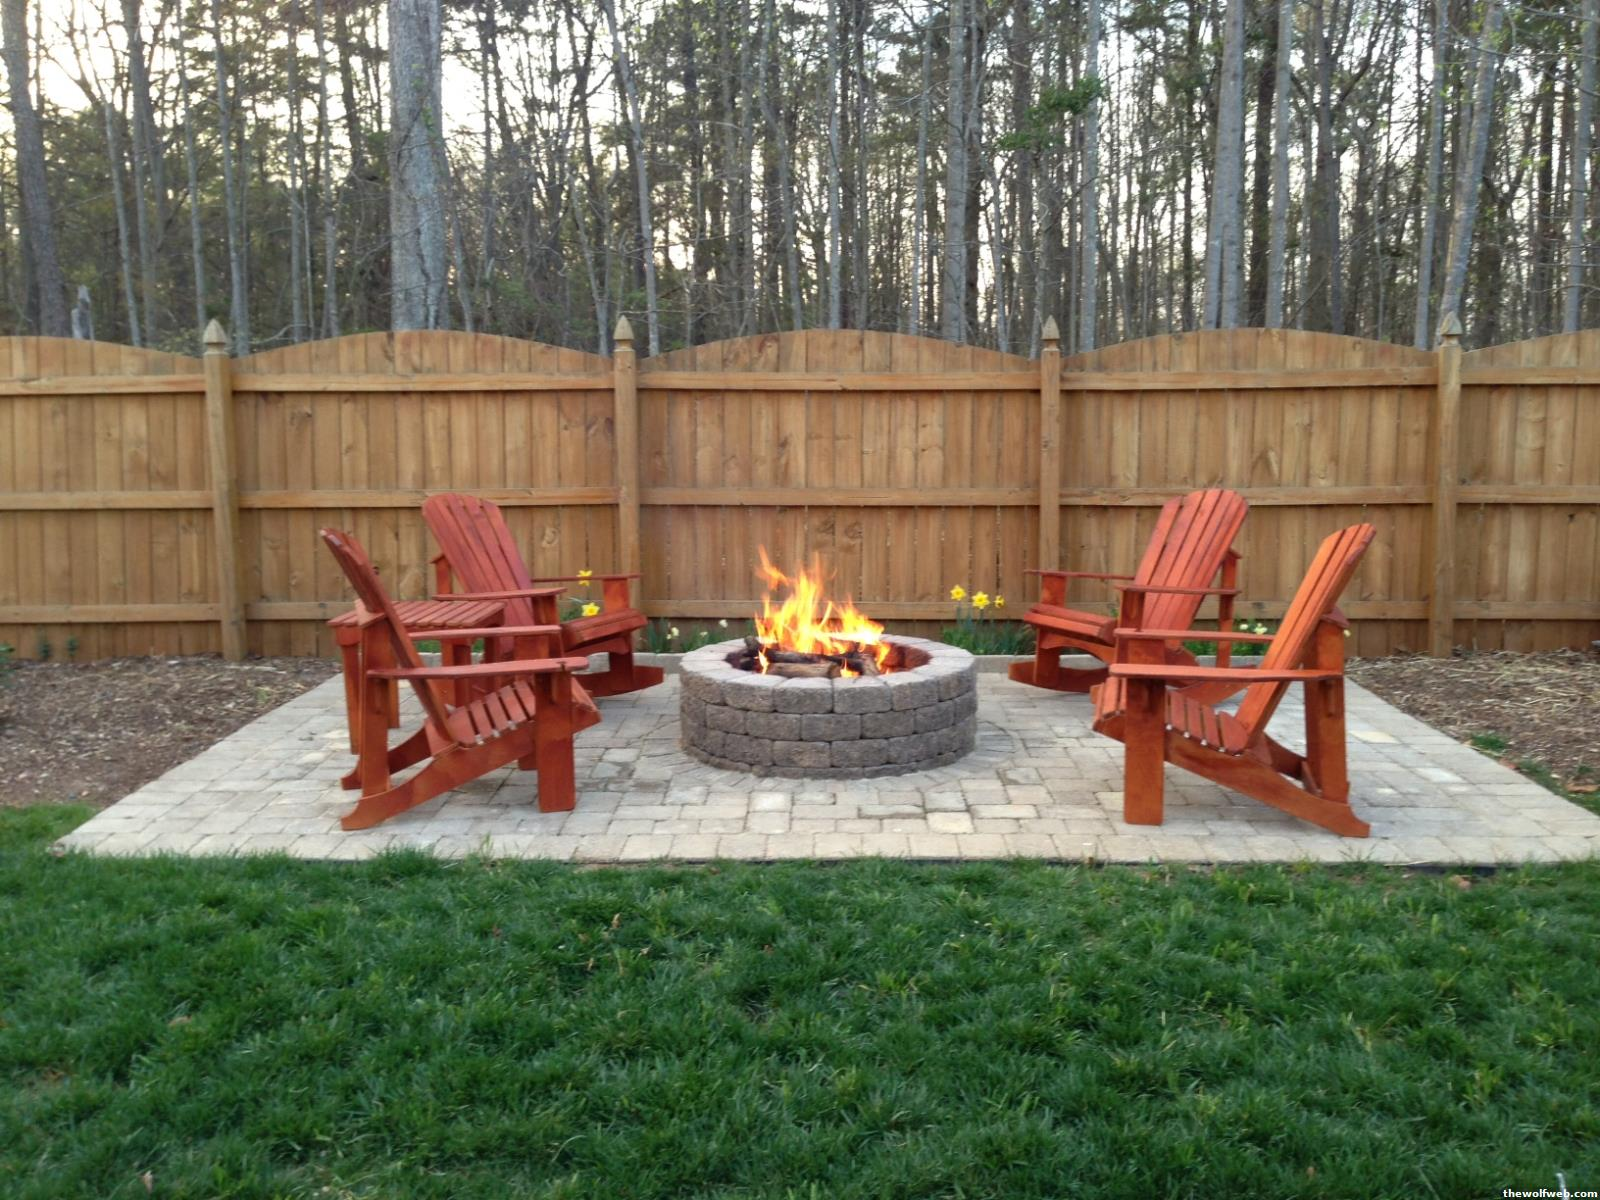 tww - paver patio, grill, firepit getting quotes